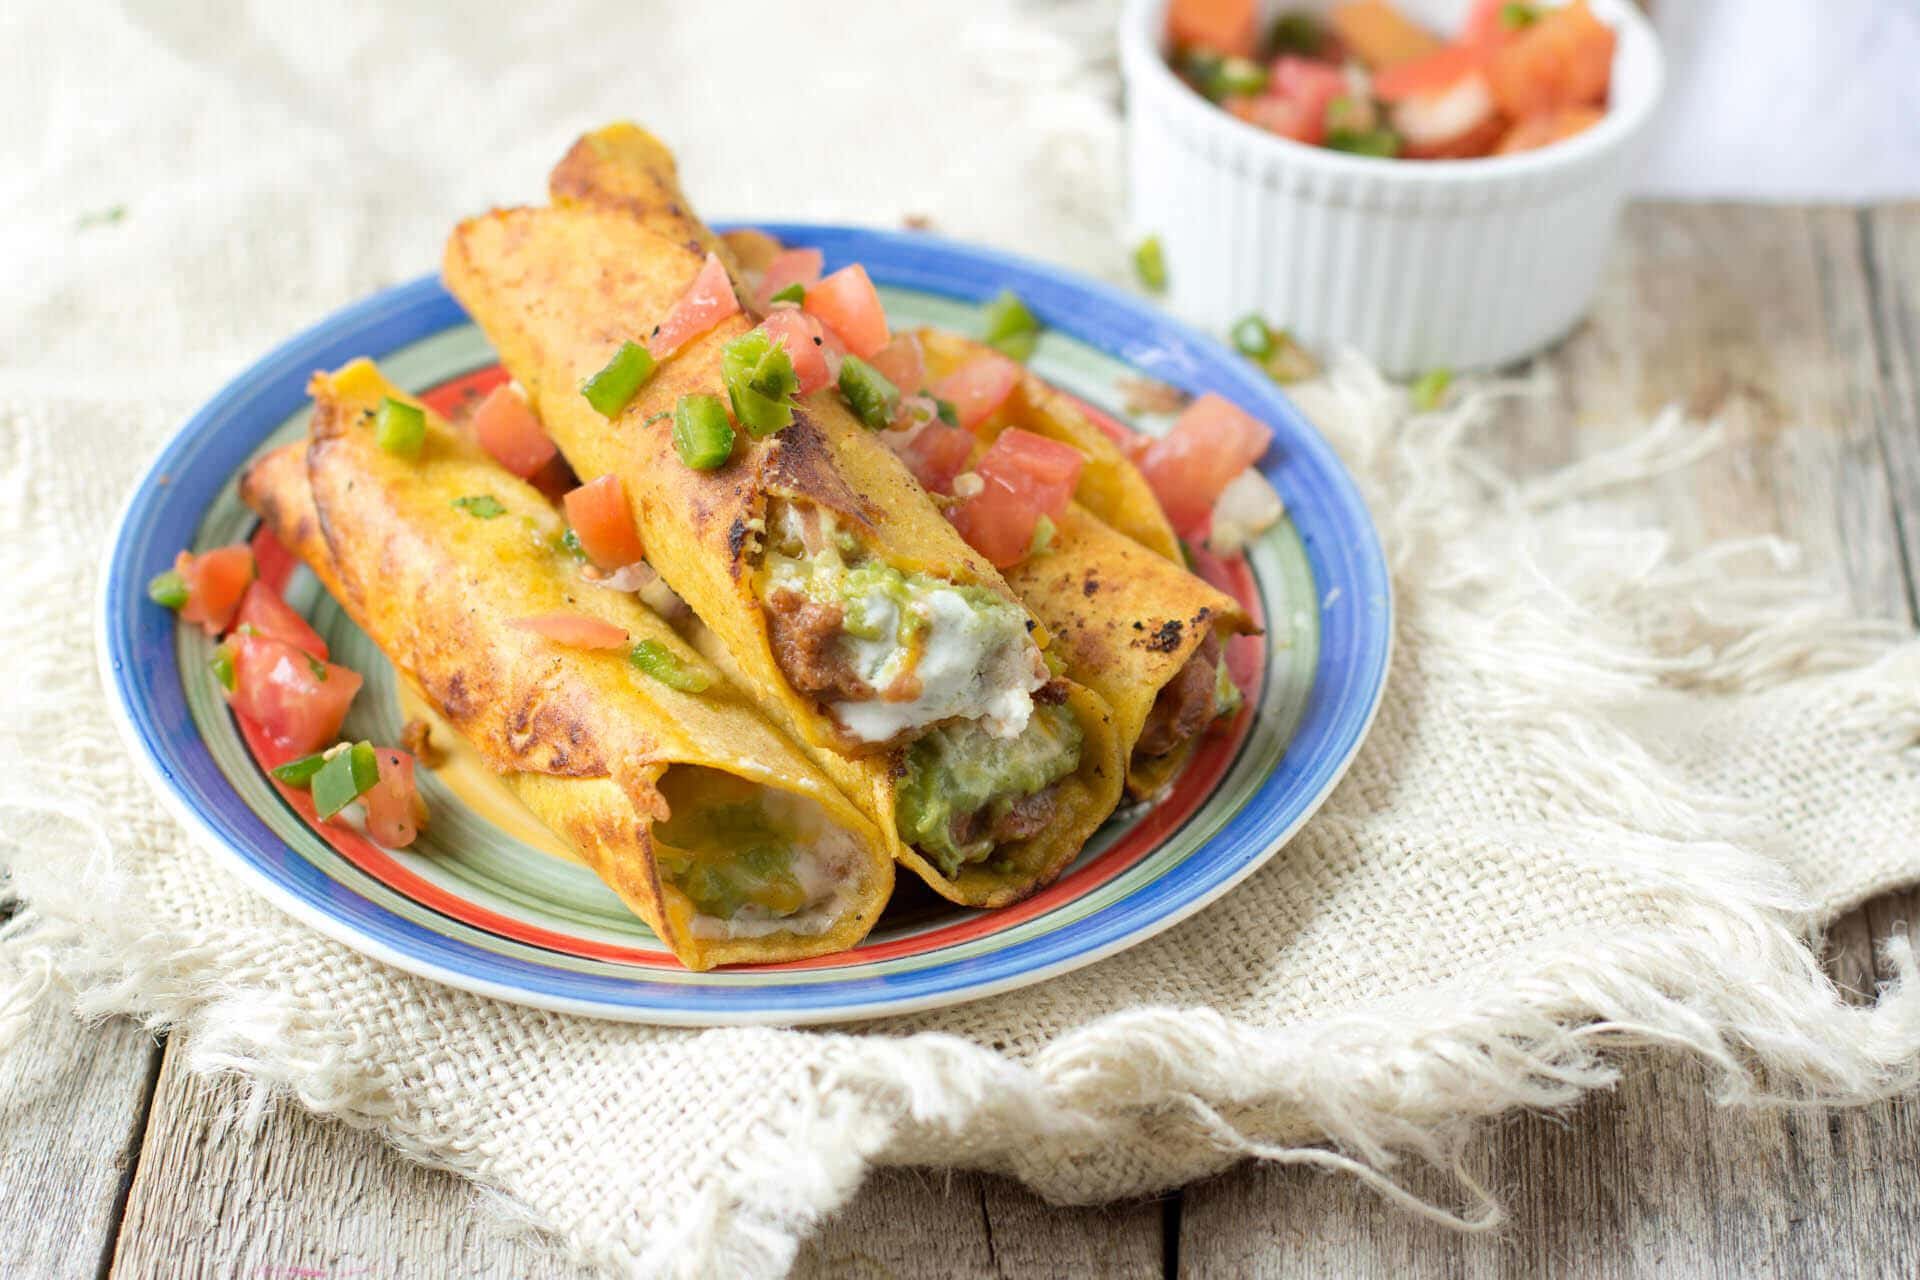 7 Layer dip is a favorite but these deep fried 7 layer dip taquitos take it to a whole new lever. Refried beans, guacamole, sour cream, & cheese!